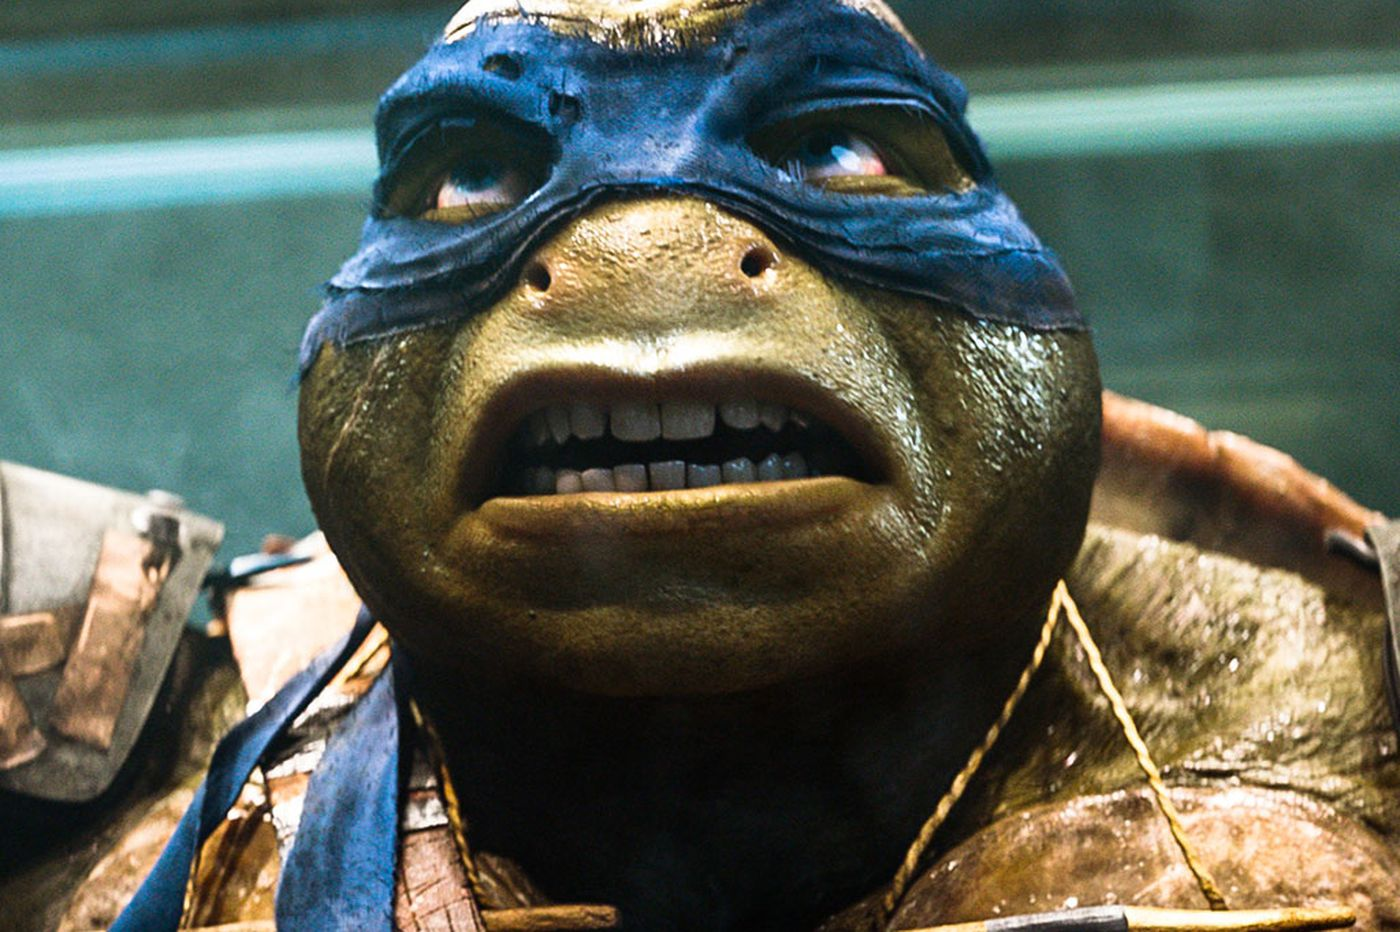 'Teenage Mutant Ninja Turtles': Return of reptiles, cliches